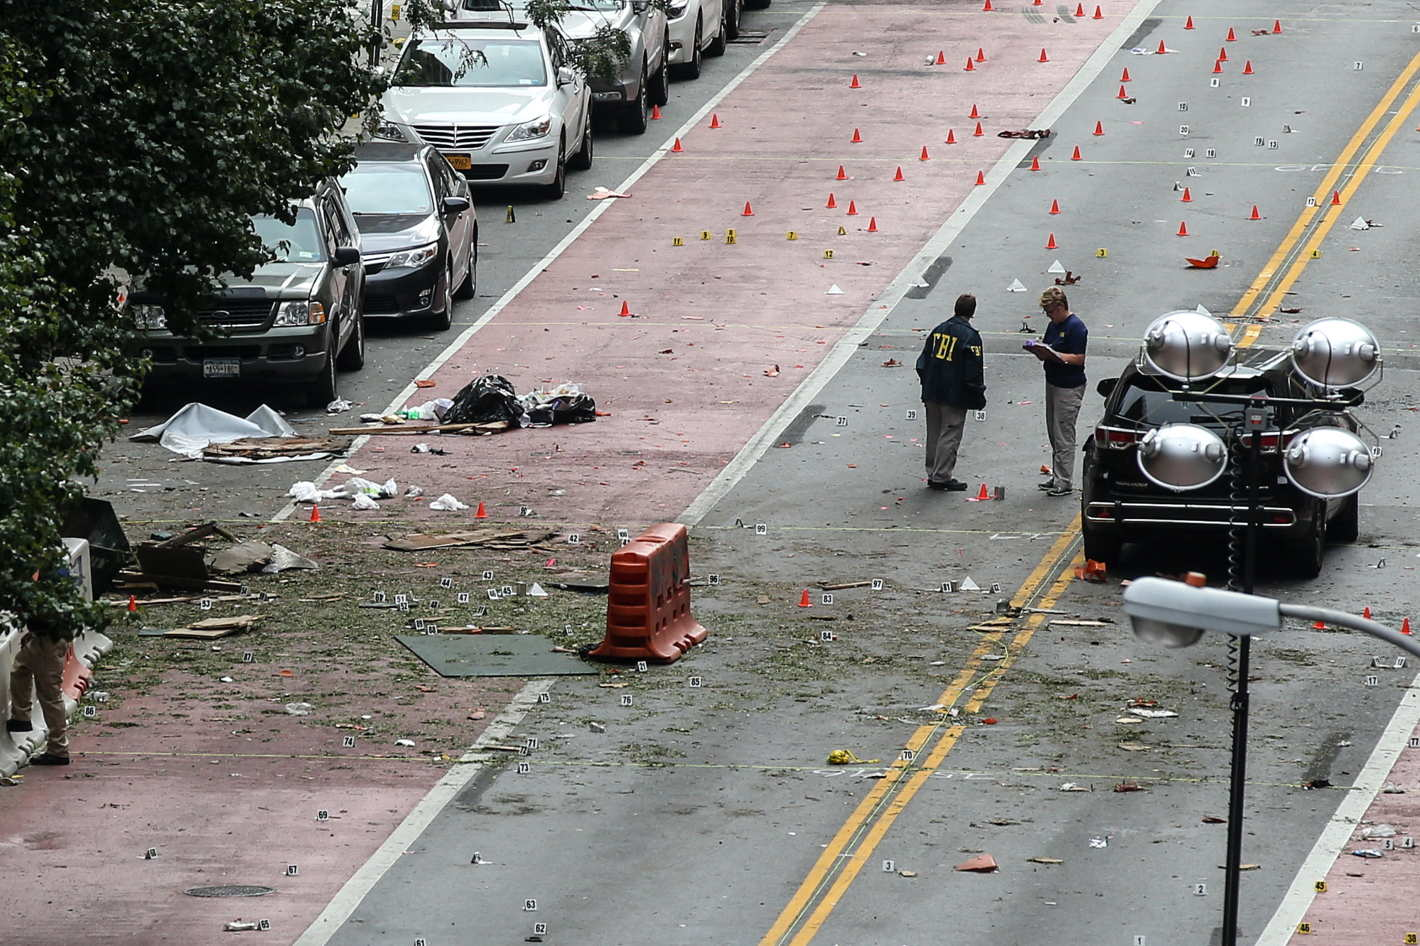 Investigators at the scene of this weekend's explosion in New York City.